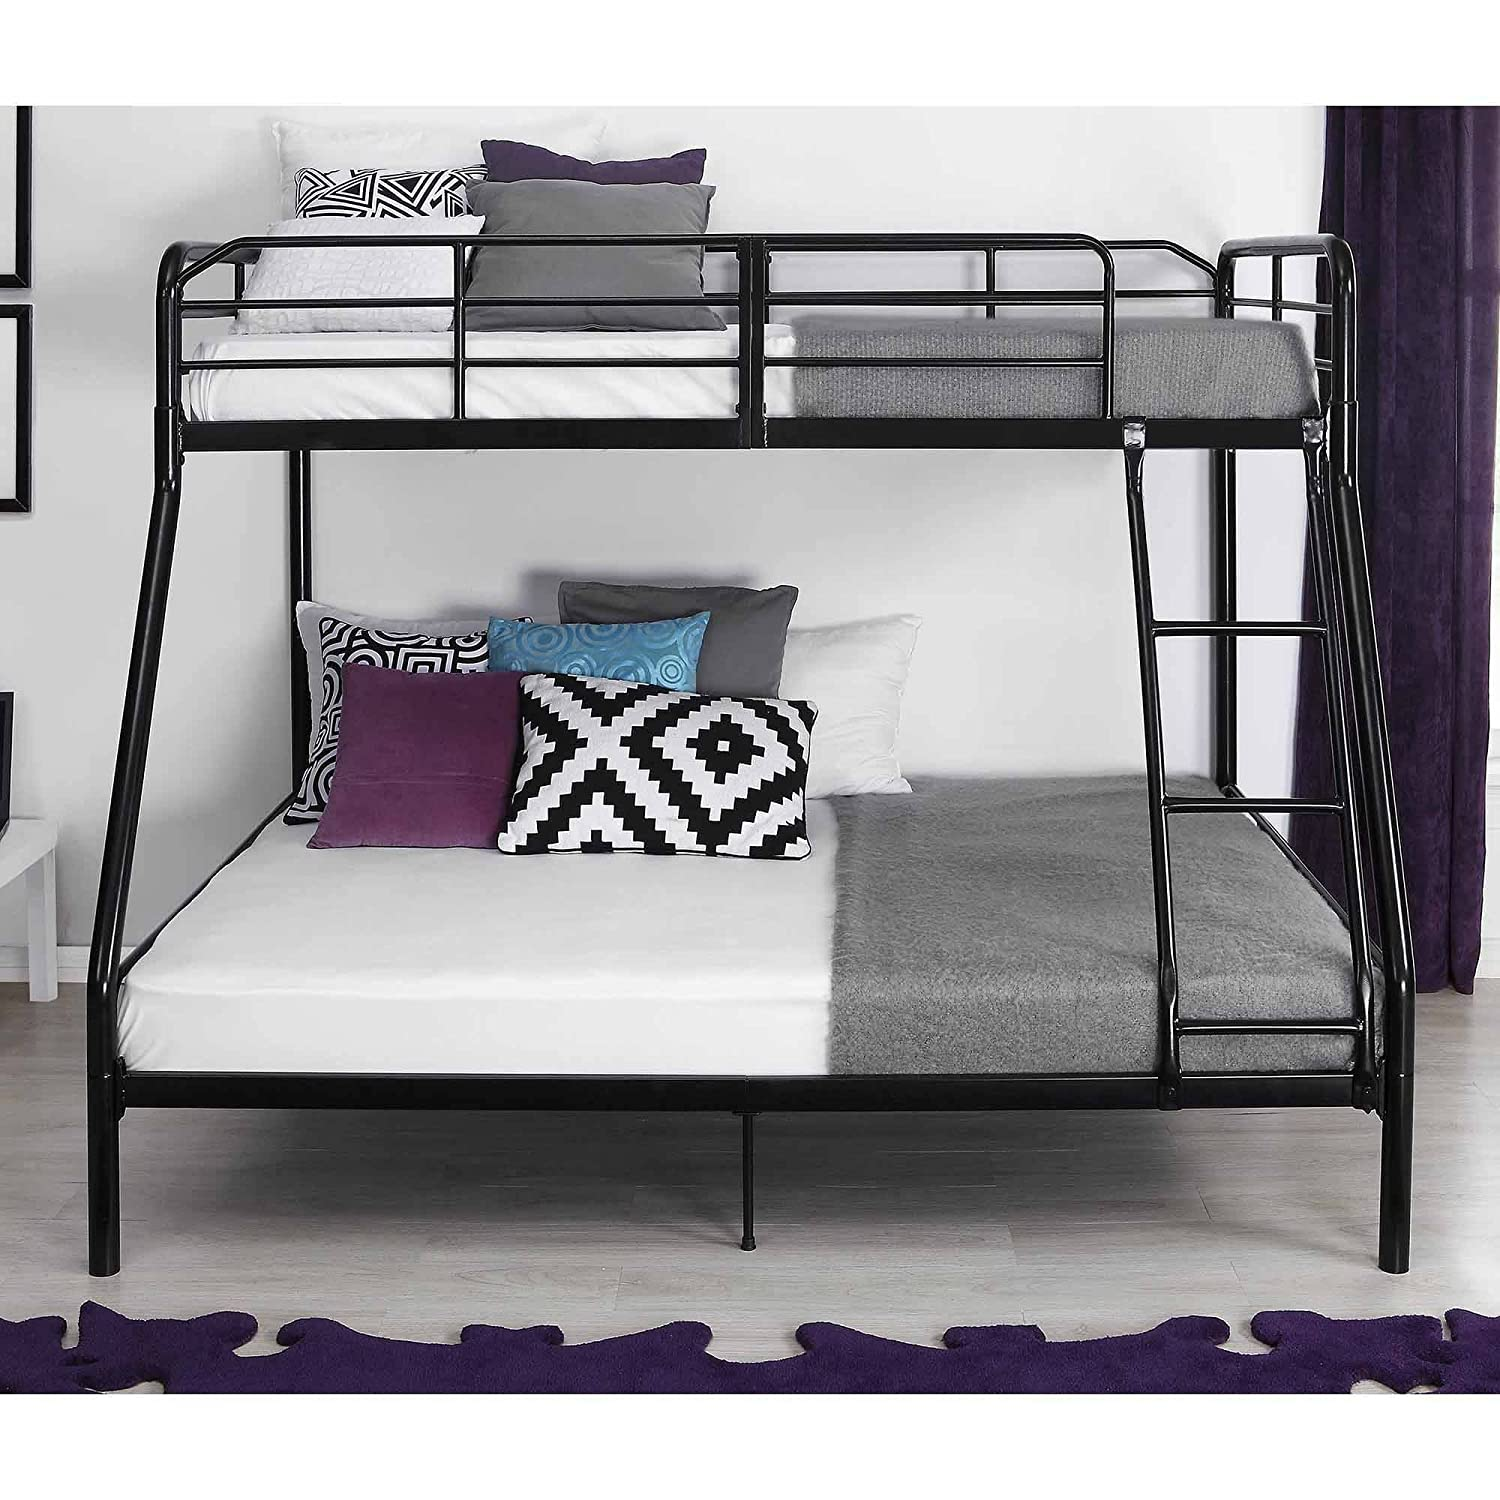 Full Over Full Bed Part - 48: Amazon.com: Twin Over Full Bunk Bed Kids Teens Bedroom Dorm Furniture Metal  Beds Bunkbeds With Ladder Black By Mainstays: Kitchen U0026 Dining